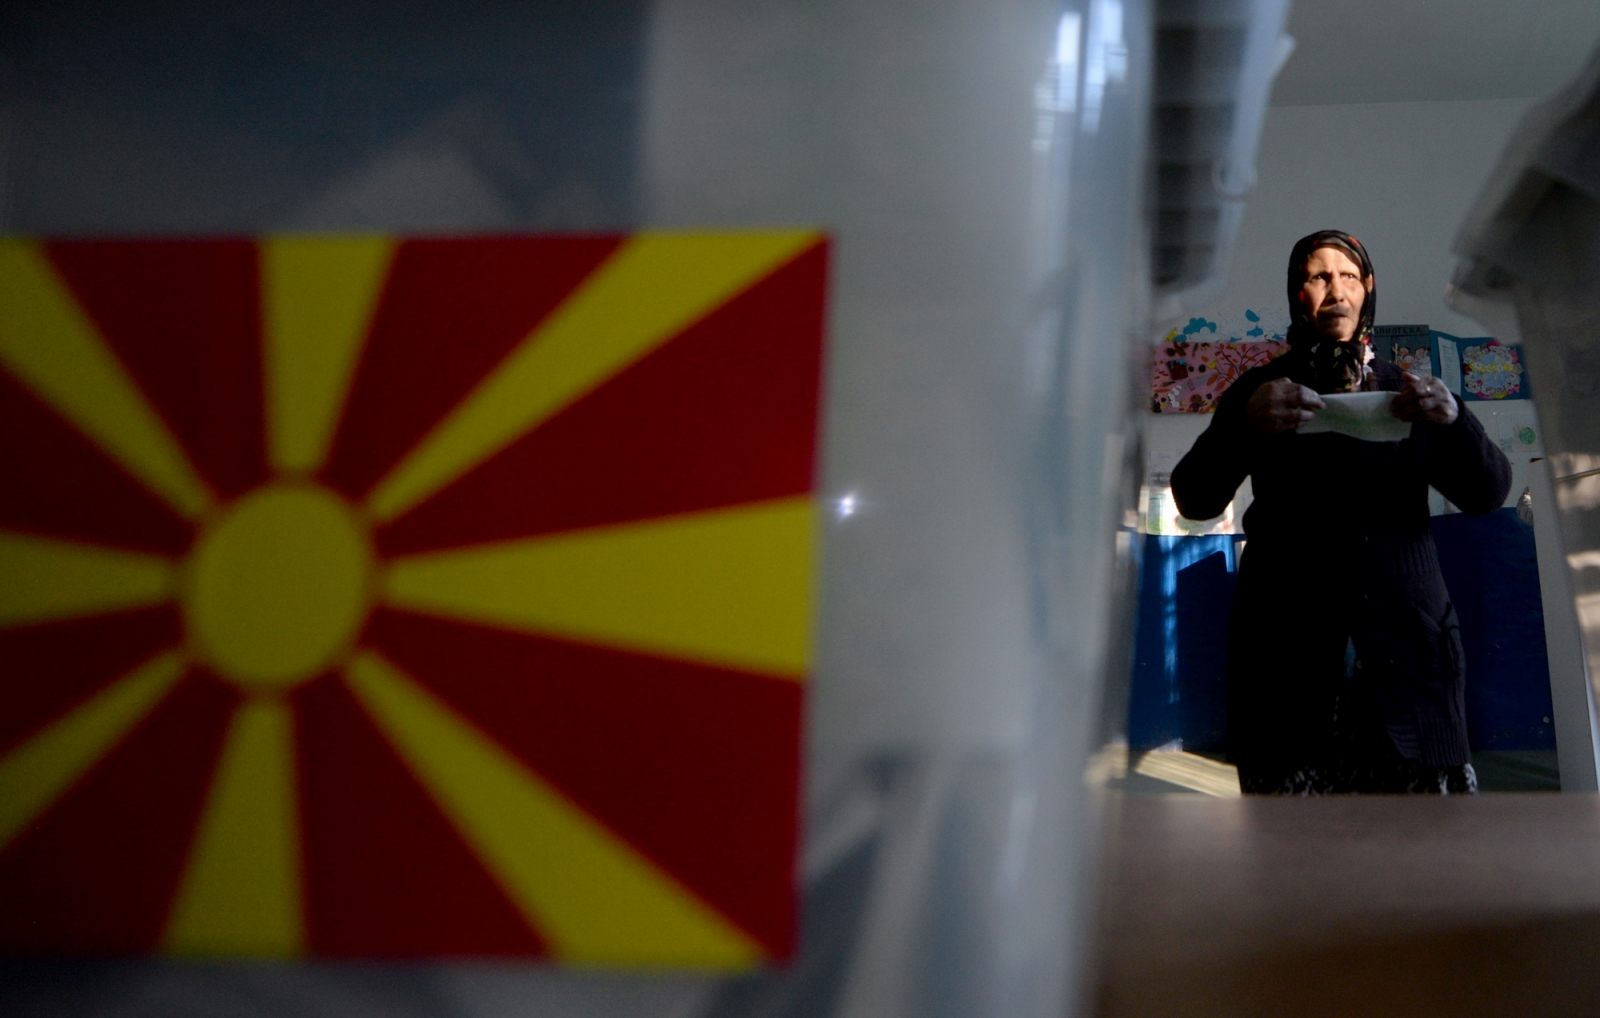 International community calls on FYROM to hold free and fair elections